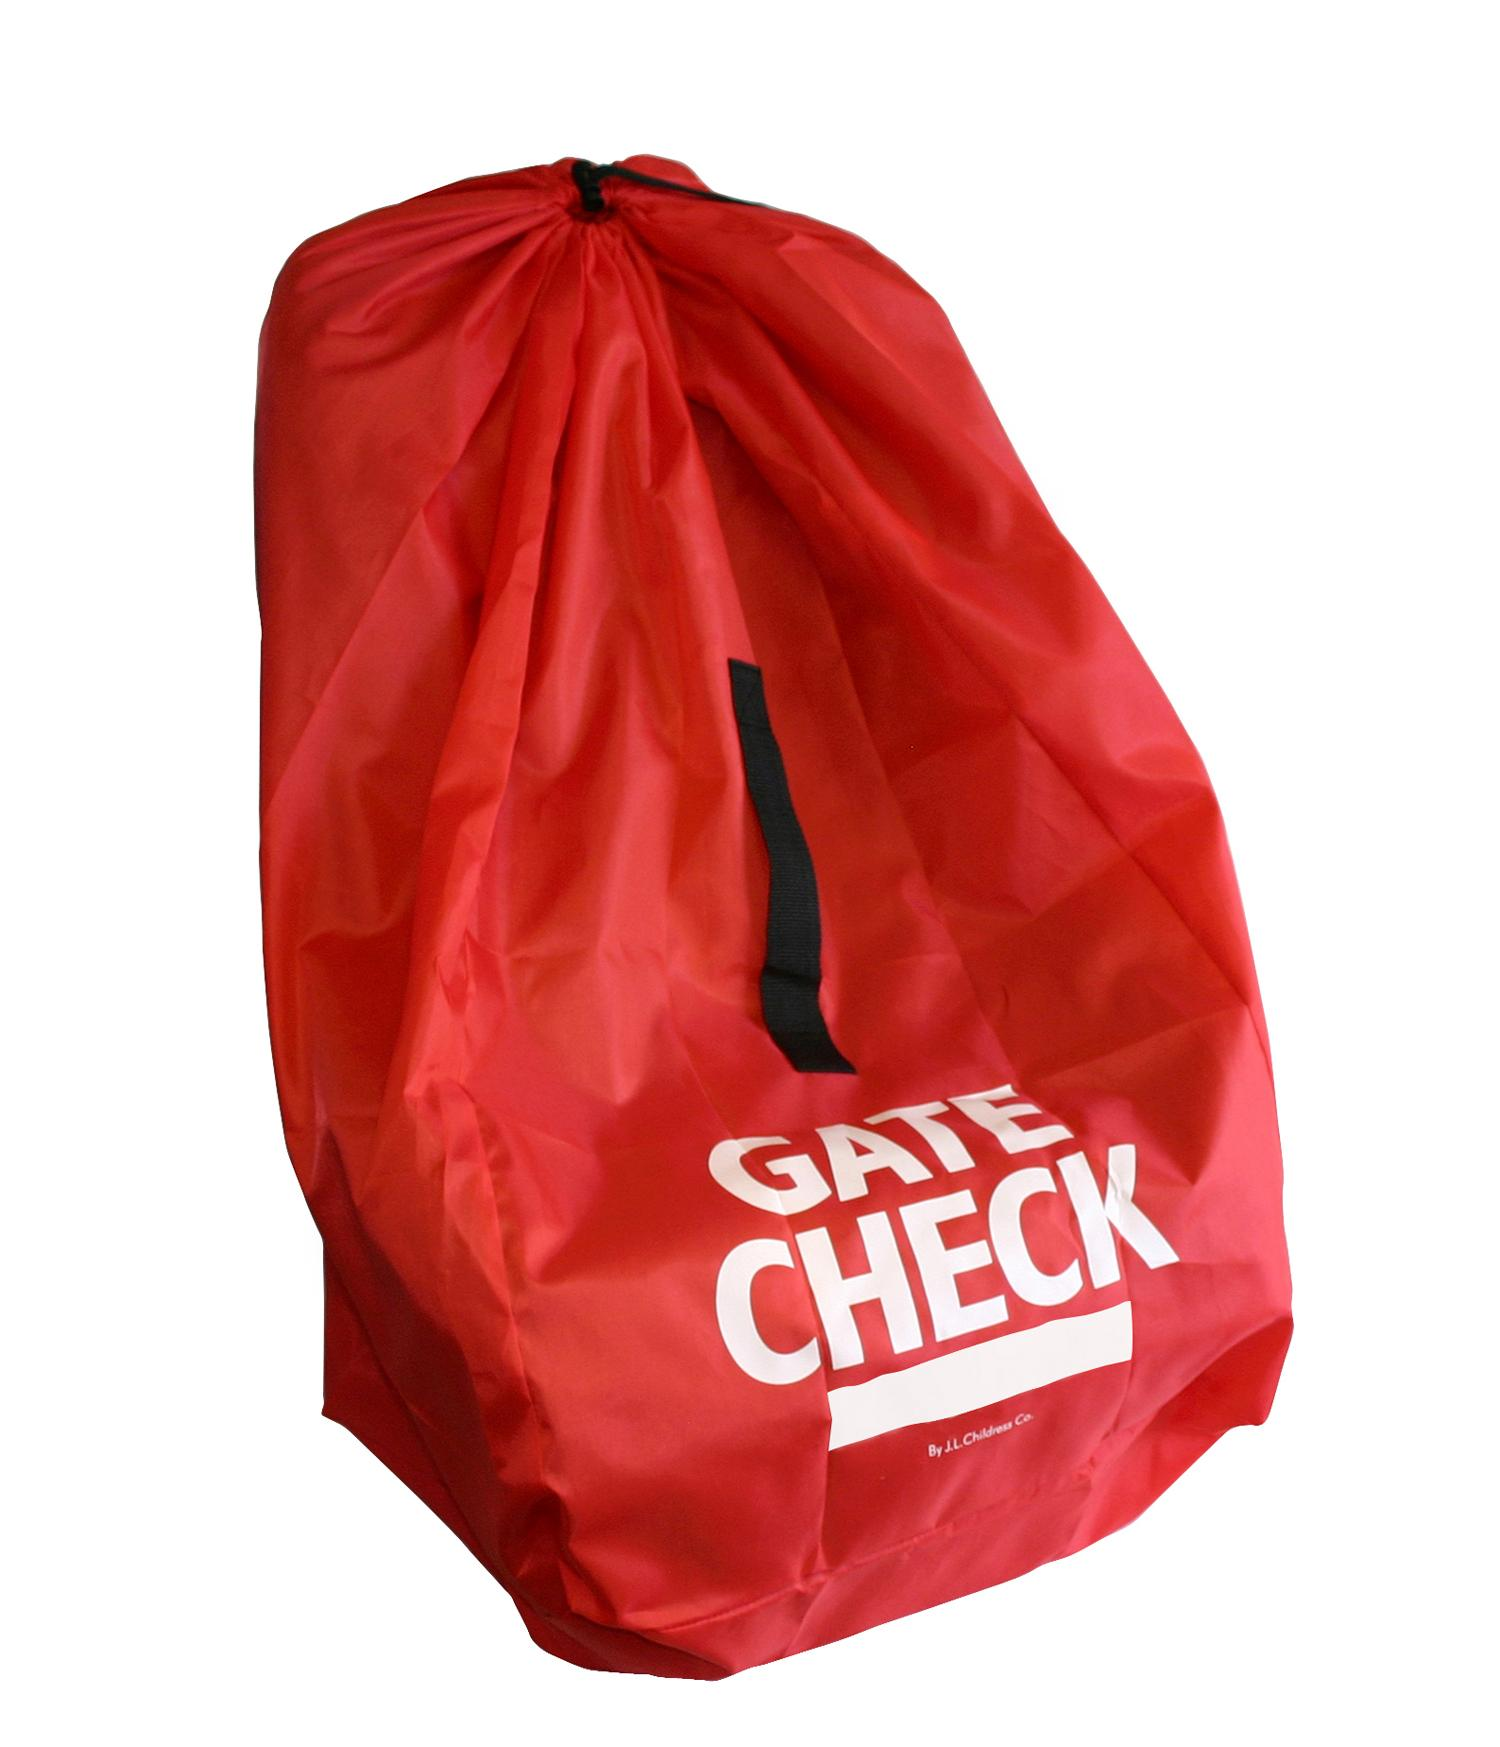 Amazon Com Jl Childress Gate Check Bag For Car Seats Red